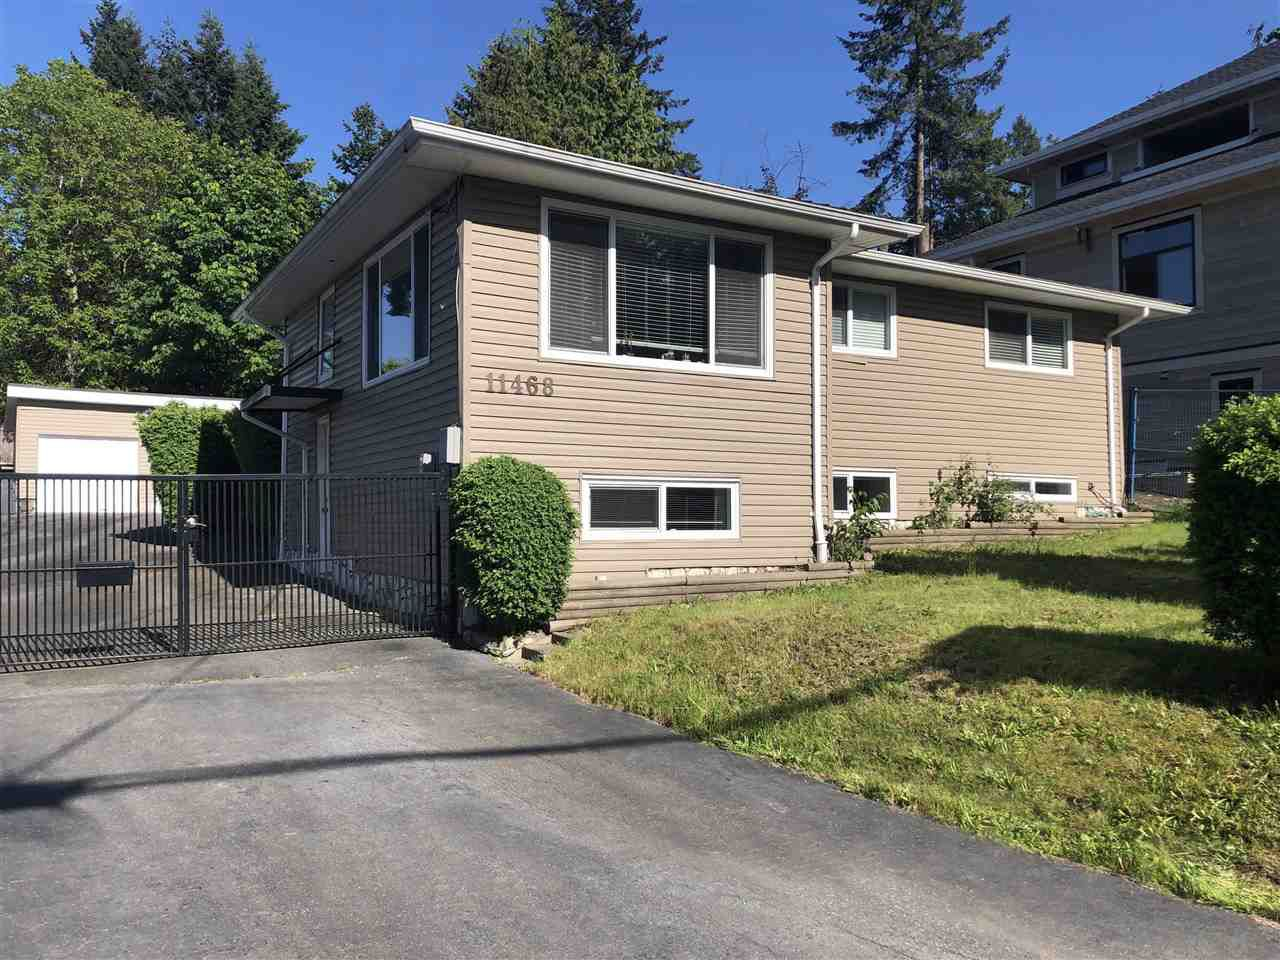 Main Photo: 11468 140A Street in Surrey: Bolivar Heights House for sale (North Surrey)  : MLS®# R2370251